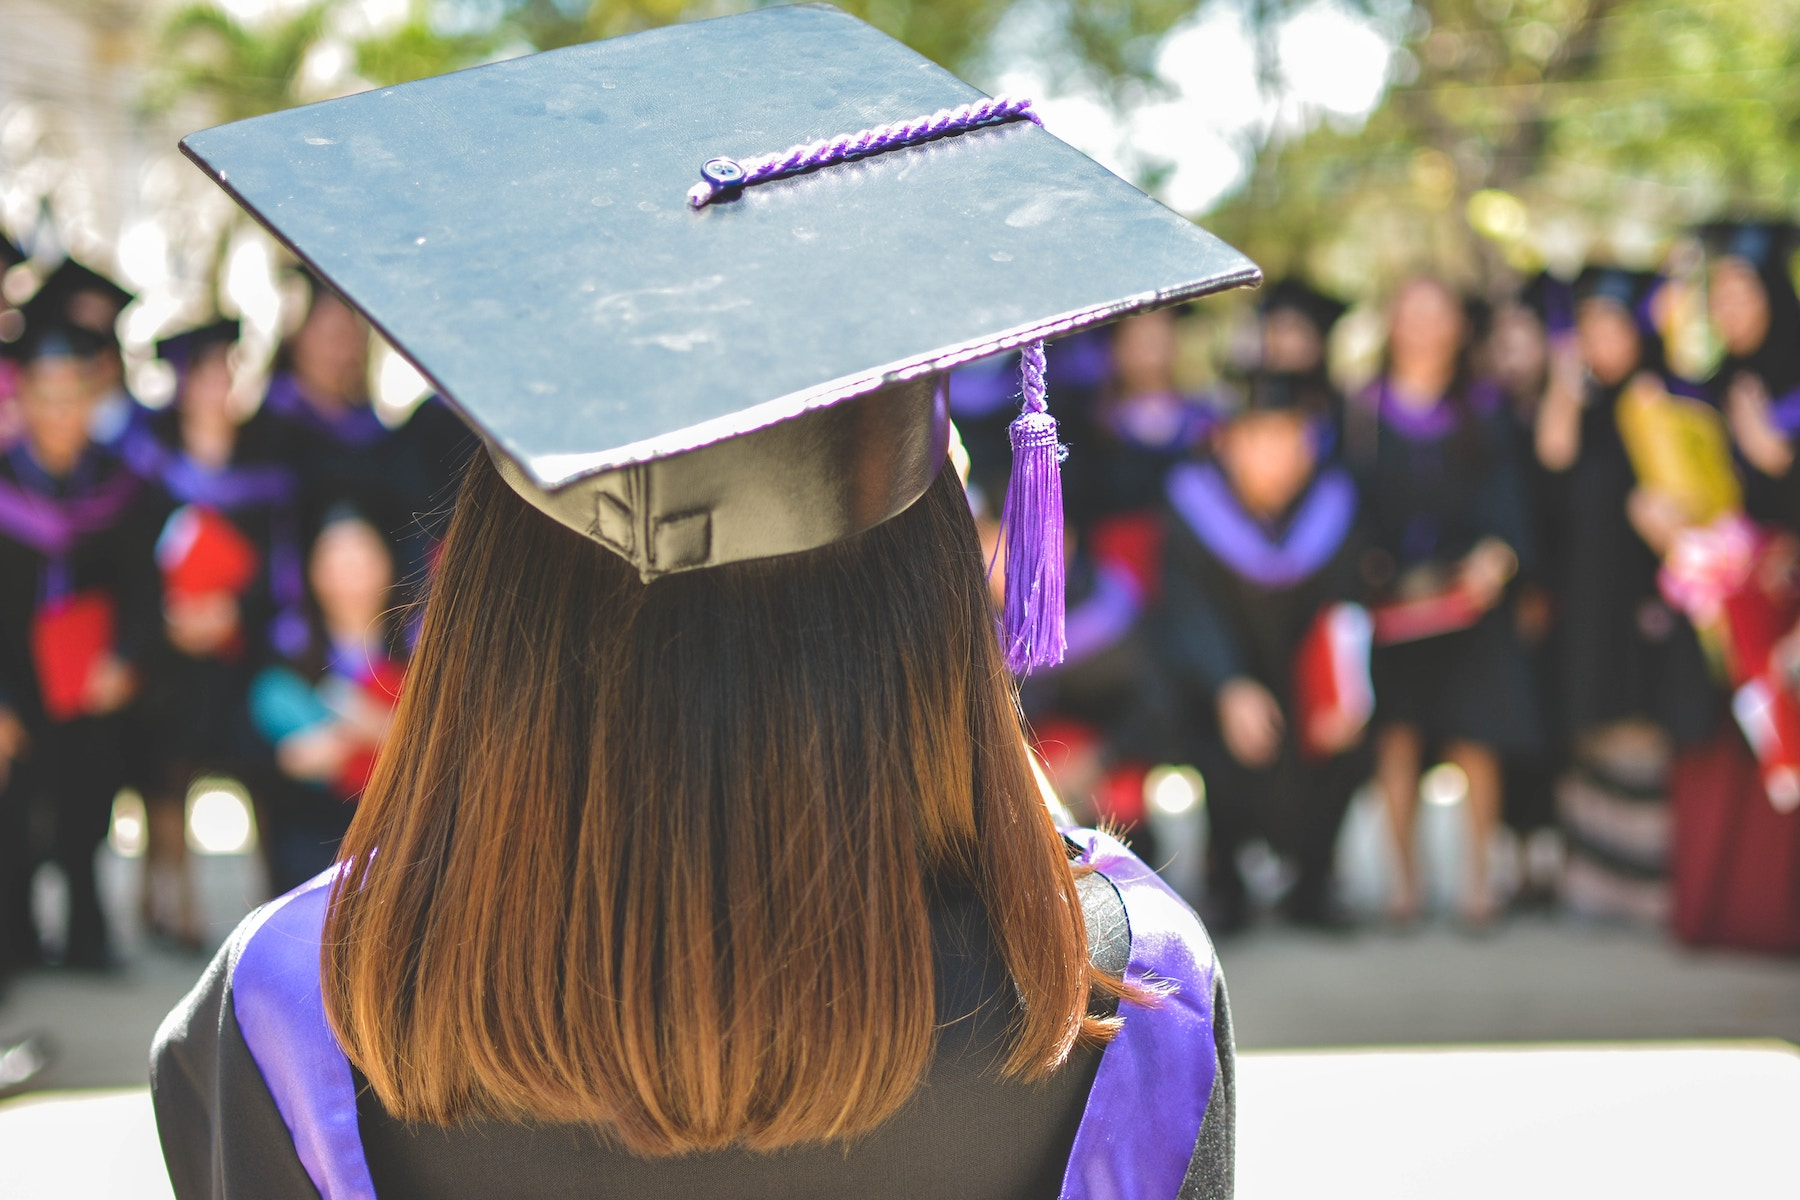 Graduate's Personal Finance Toolkit - A private 2 hour sit down with a financial advisor to provide expert guidance and financial education at this key life moment and set them up for long-term success. Cost $247